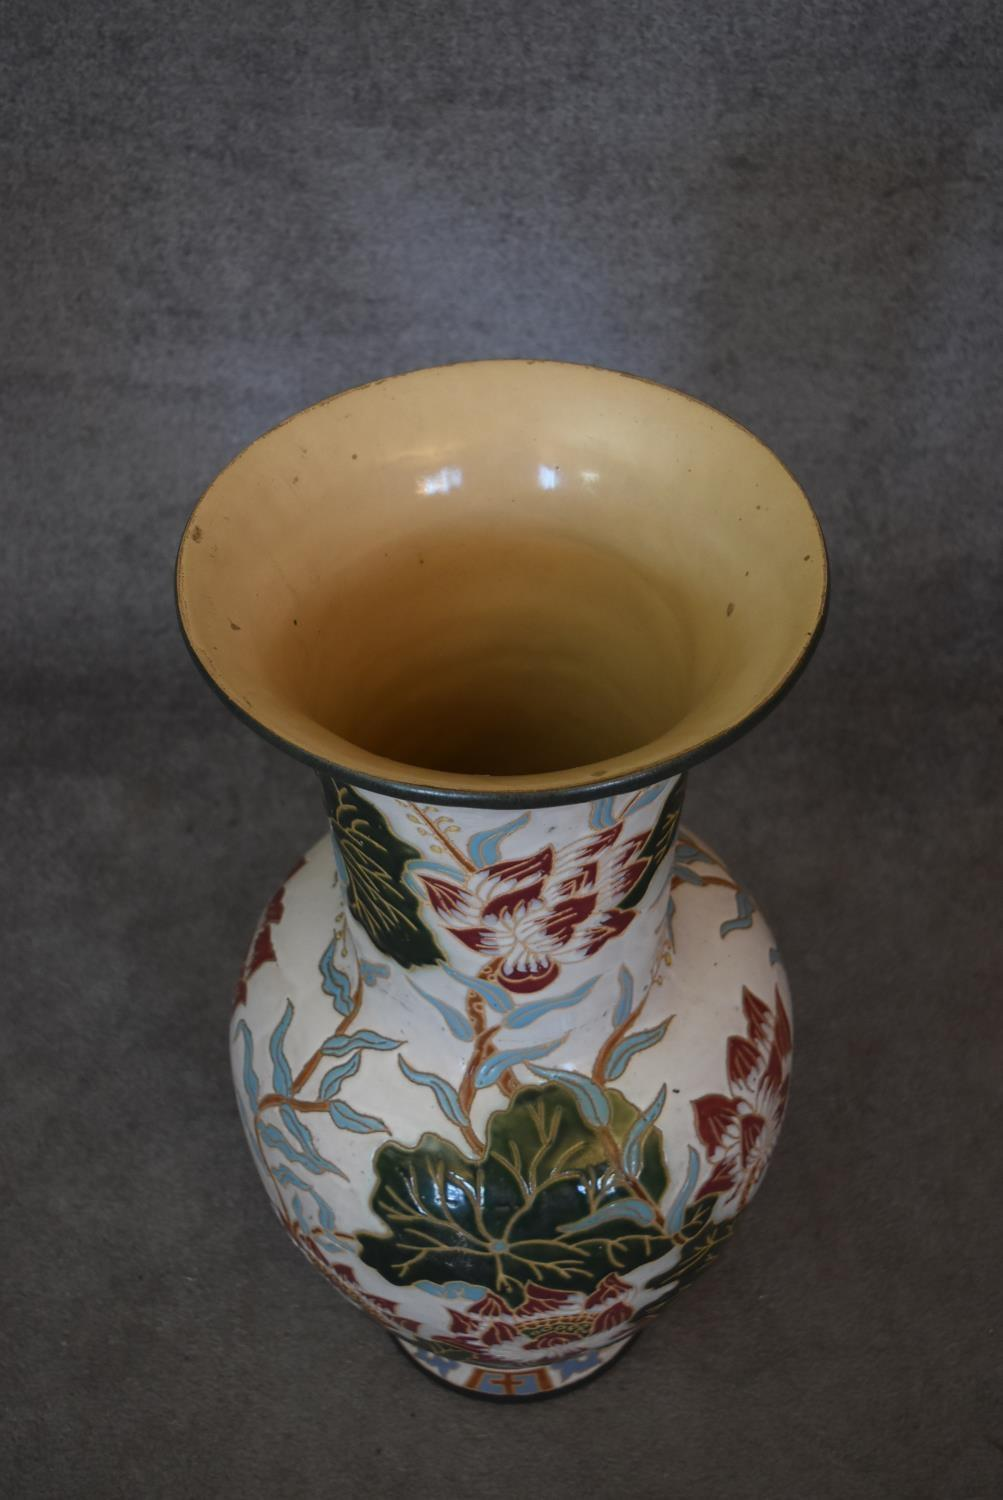 A large floor standing ceramic glazed Oriental style vase of bulbous form with lotus flower and - Image 3 of 4